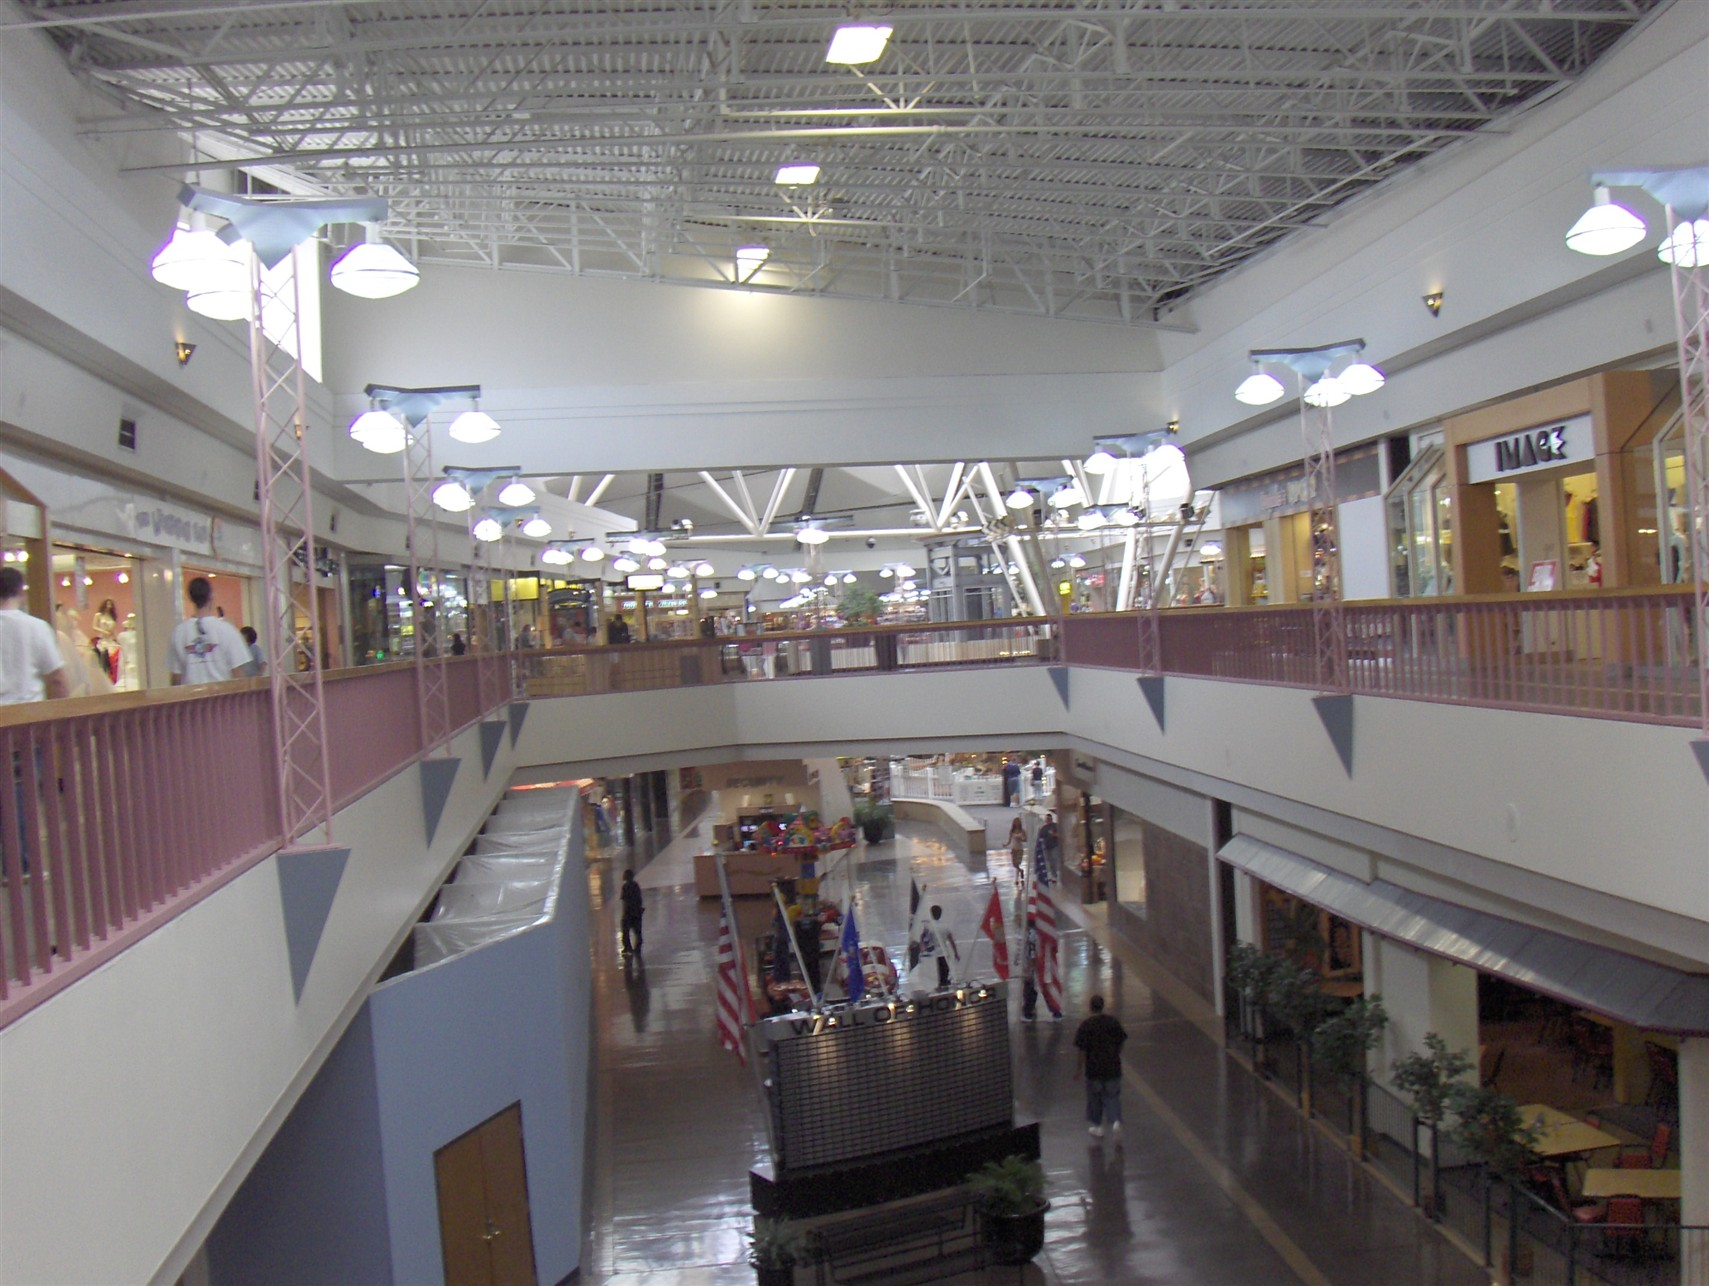 Best Oklahoma City Shopping: See reviews and photos of shops, malls & outlets in Oklahoma City, Oklahoma on TripAdvisor.